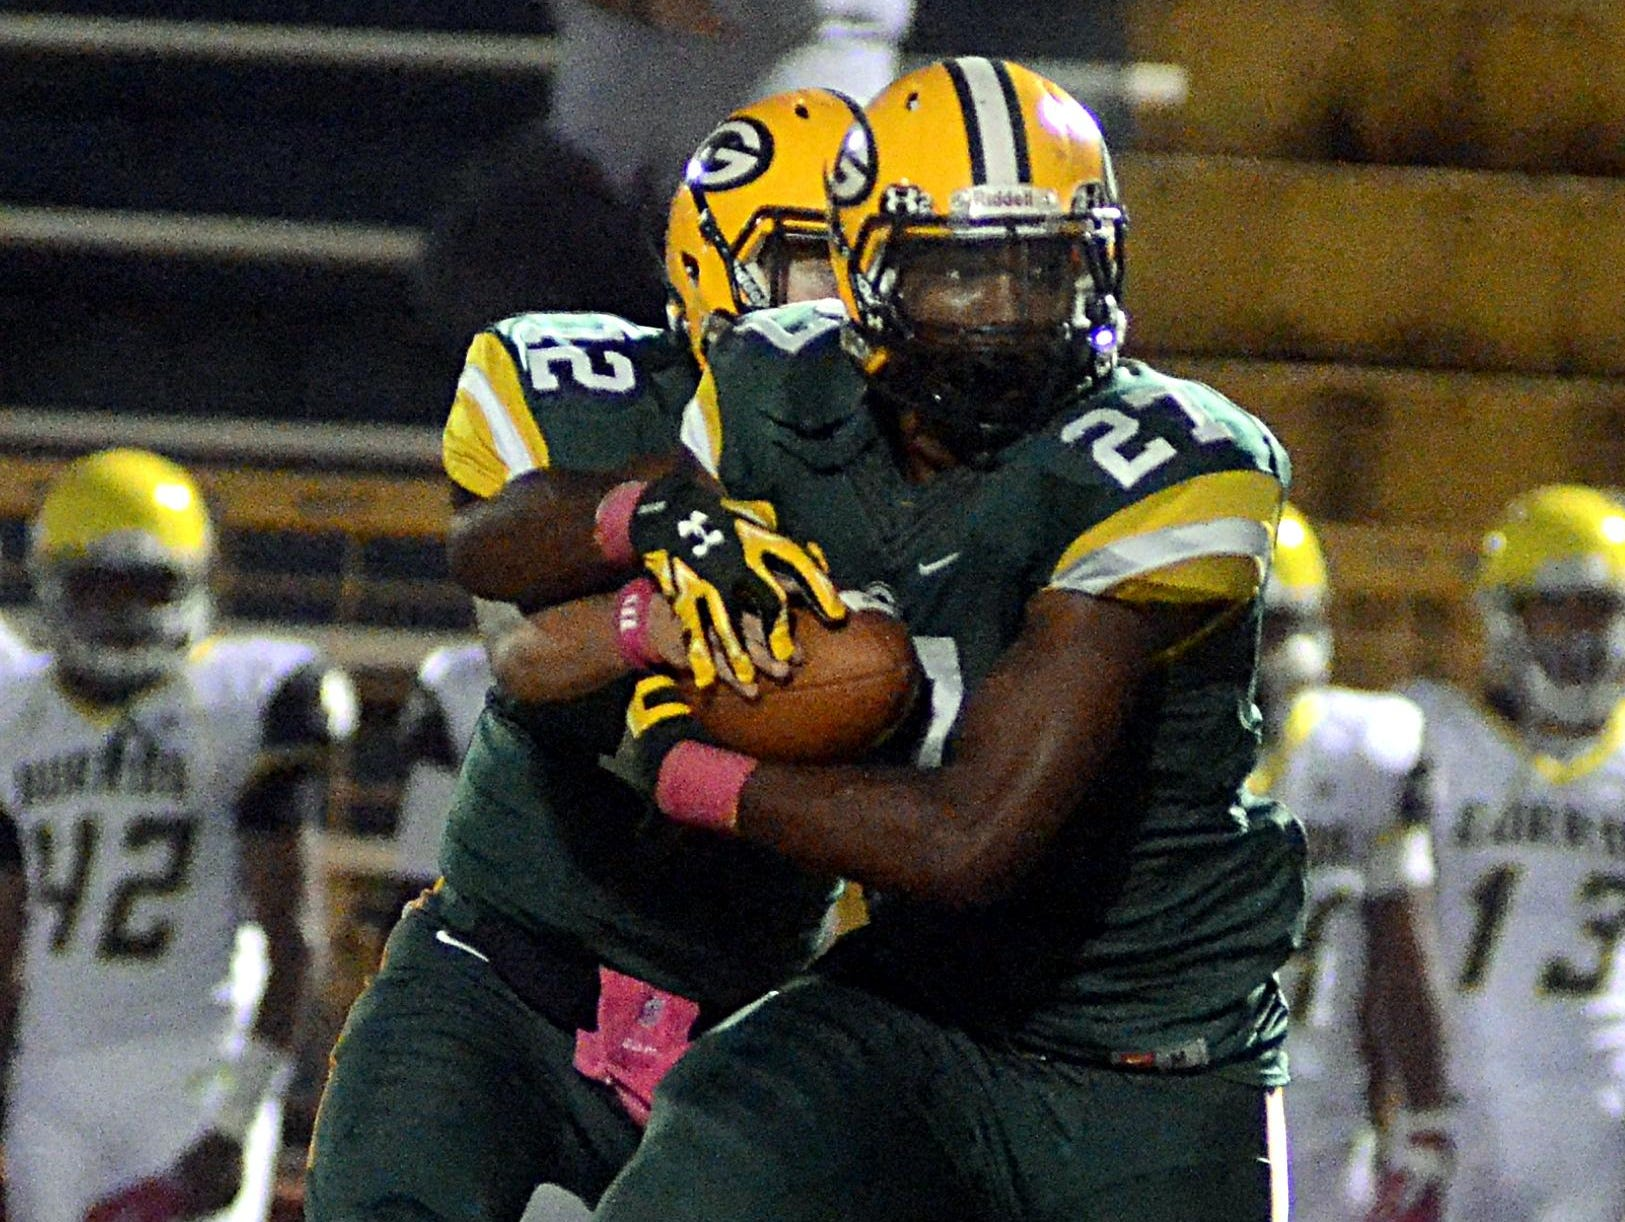 Gallatin High junior tailback Jordan Mason receives a handoff from quarterback Wyatt Hayes during first-quarter action. Mason rushed for 126 yards and a touchdown in the Green Wave's 28-13 loss to visiting Hillsboro.